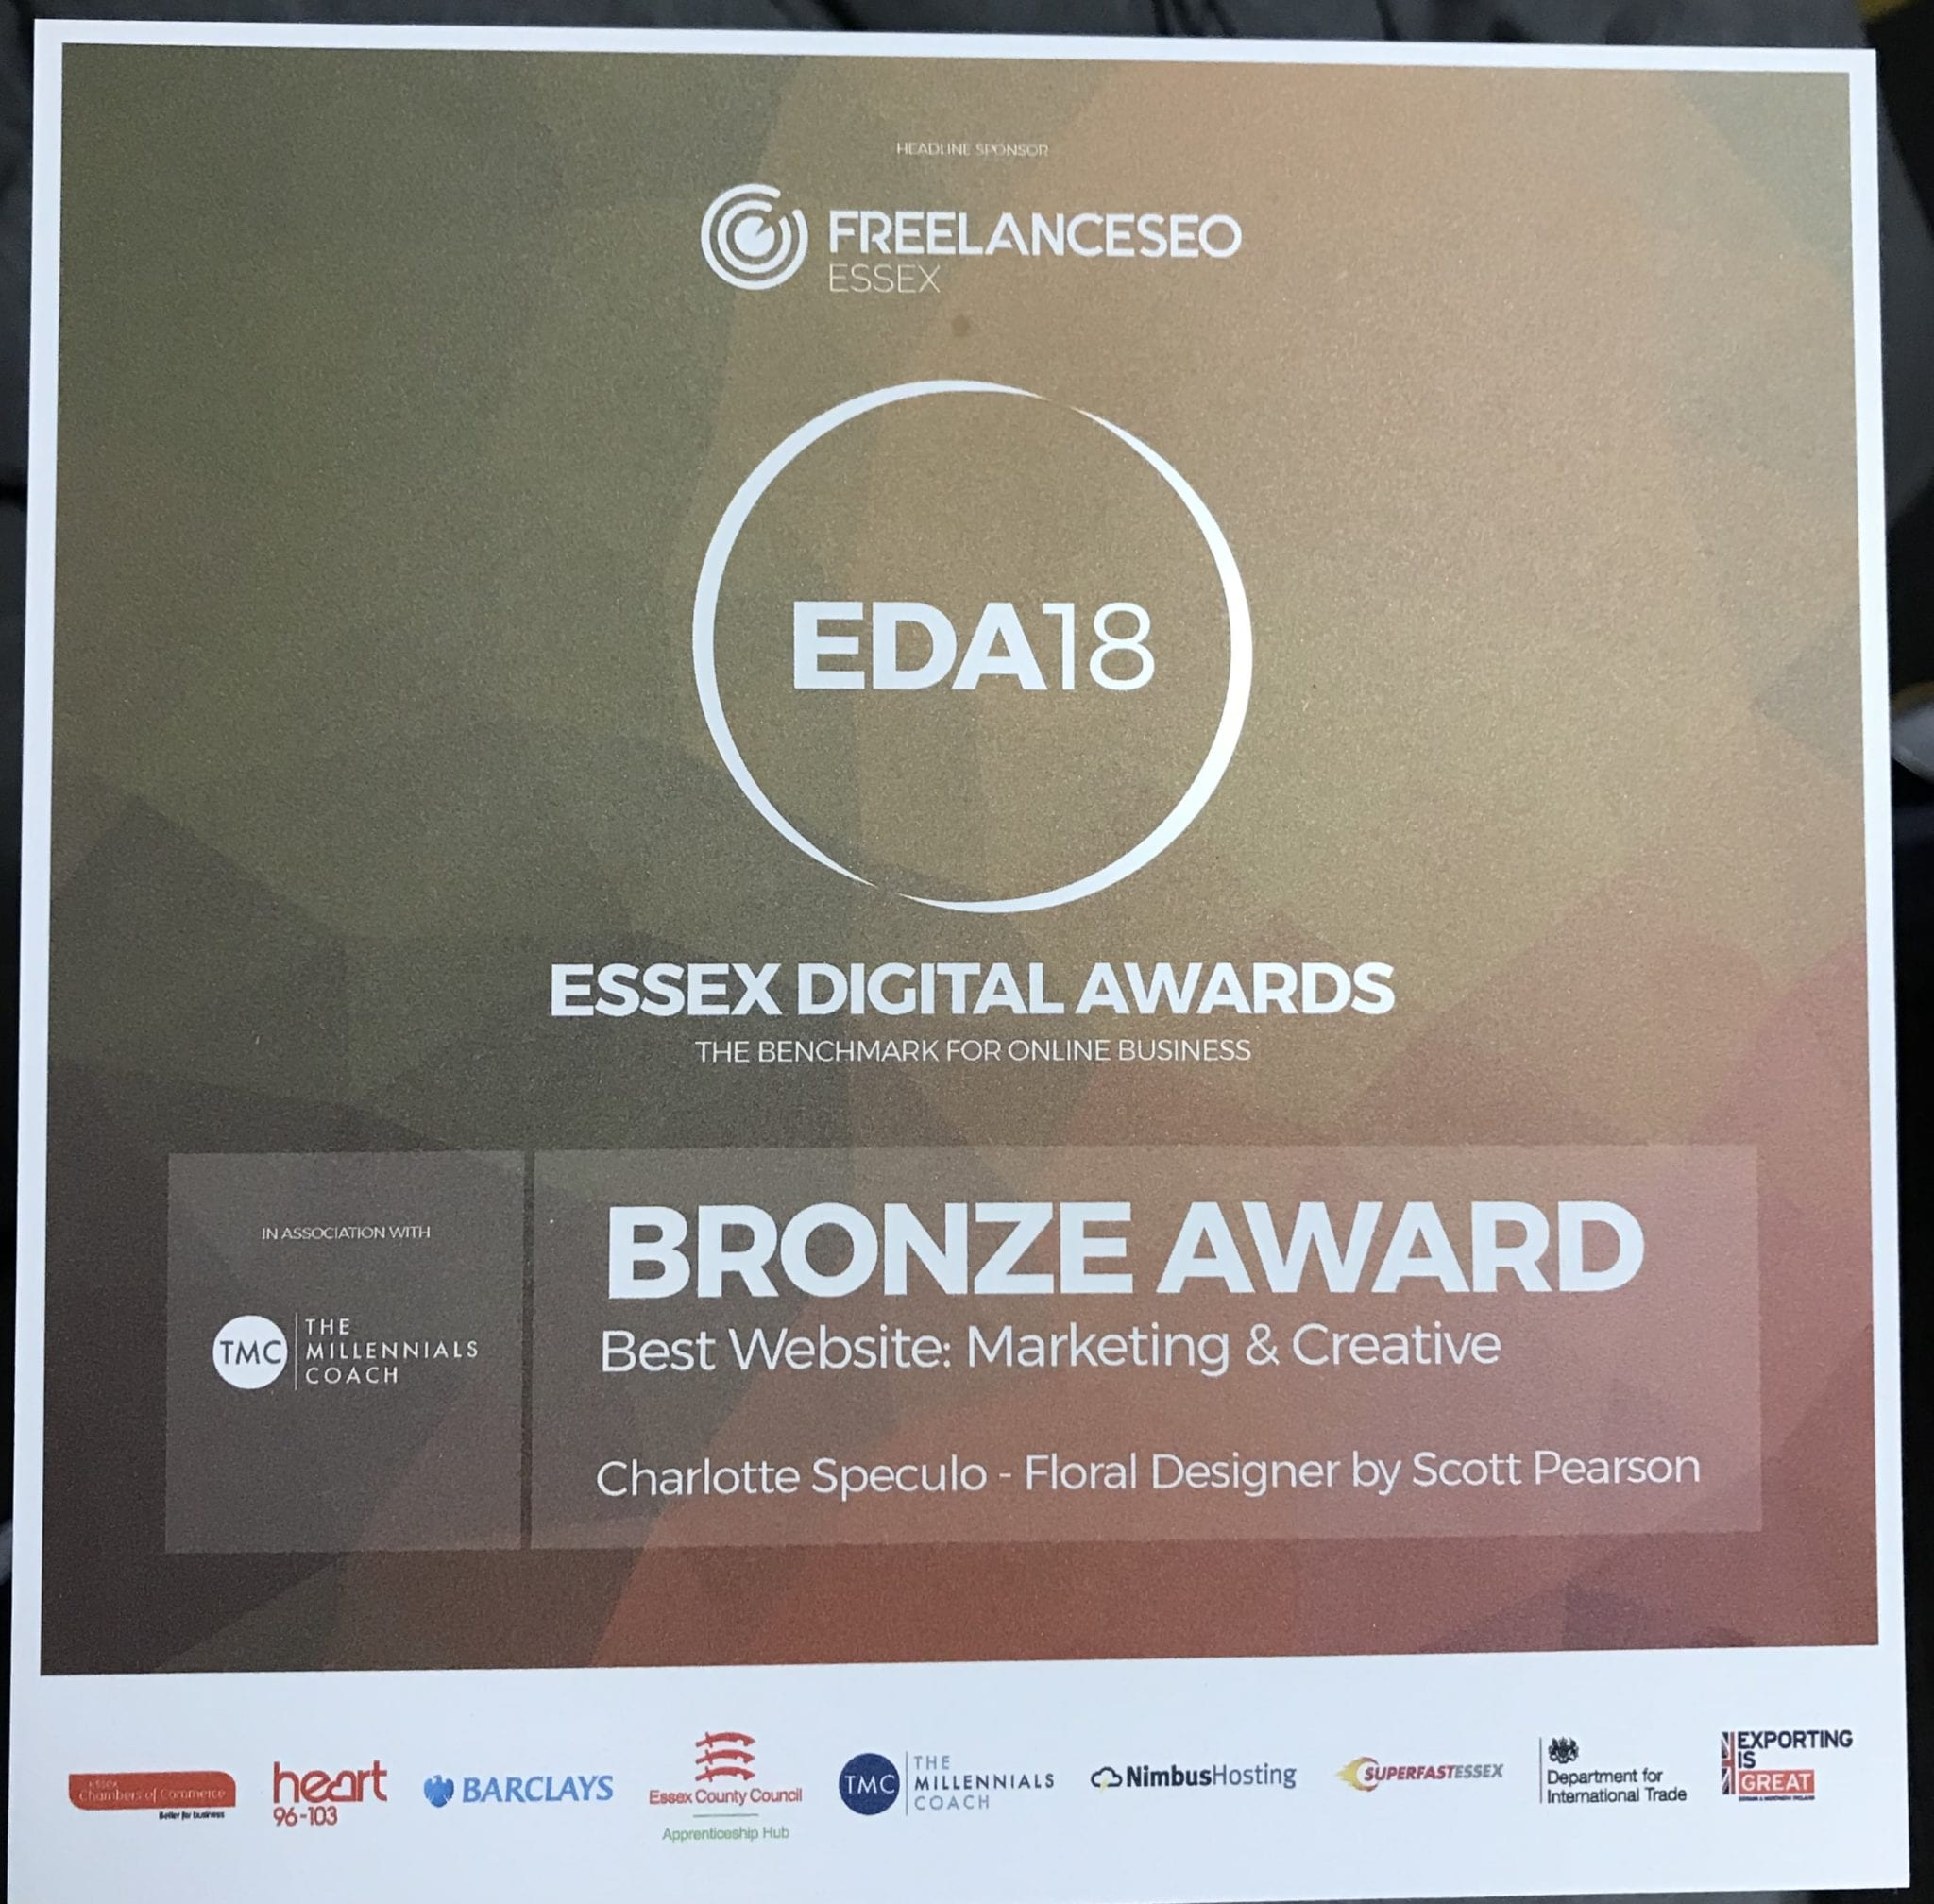 Essex Digital Awards Plaque